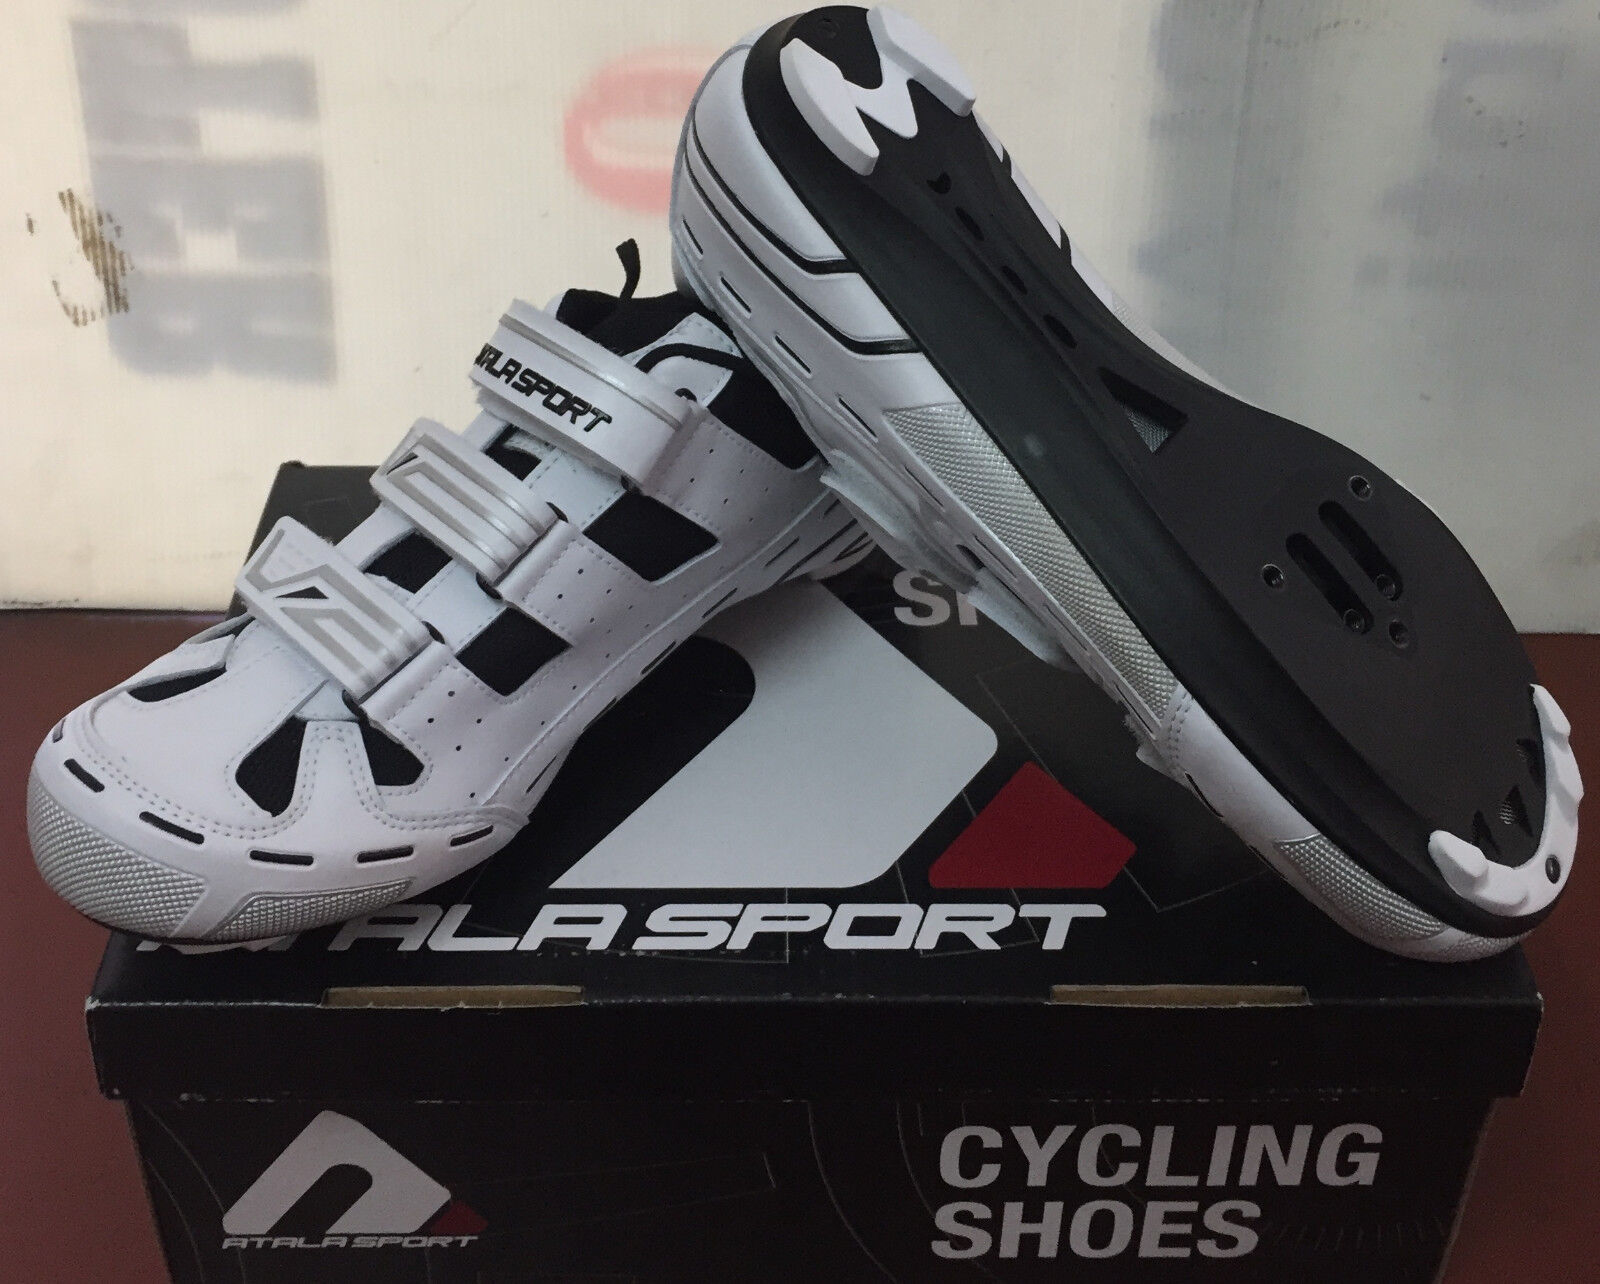 shoes BICI CORSA MTB SPINNING ATALA SPORT AS50 XLC BIANCO CICLISMO TG 44